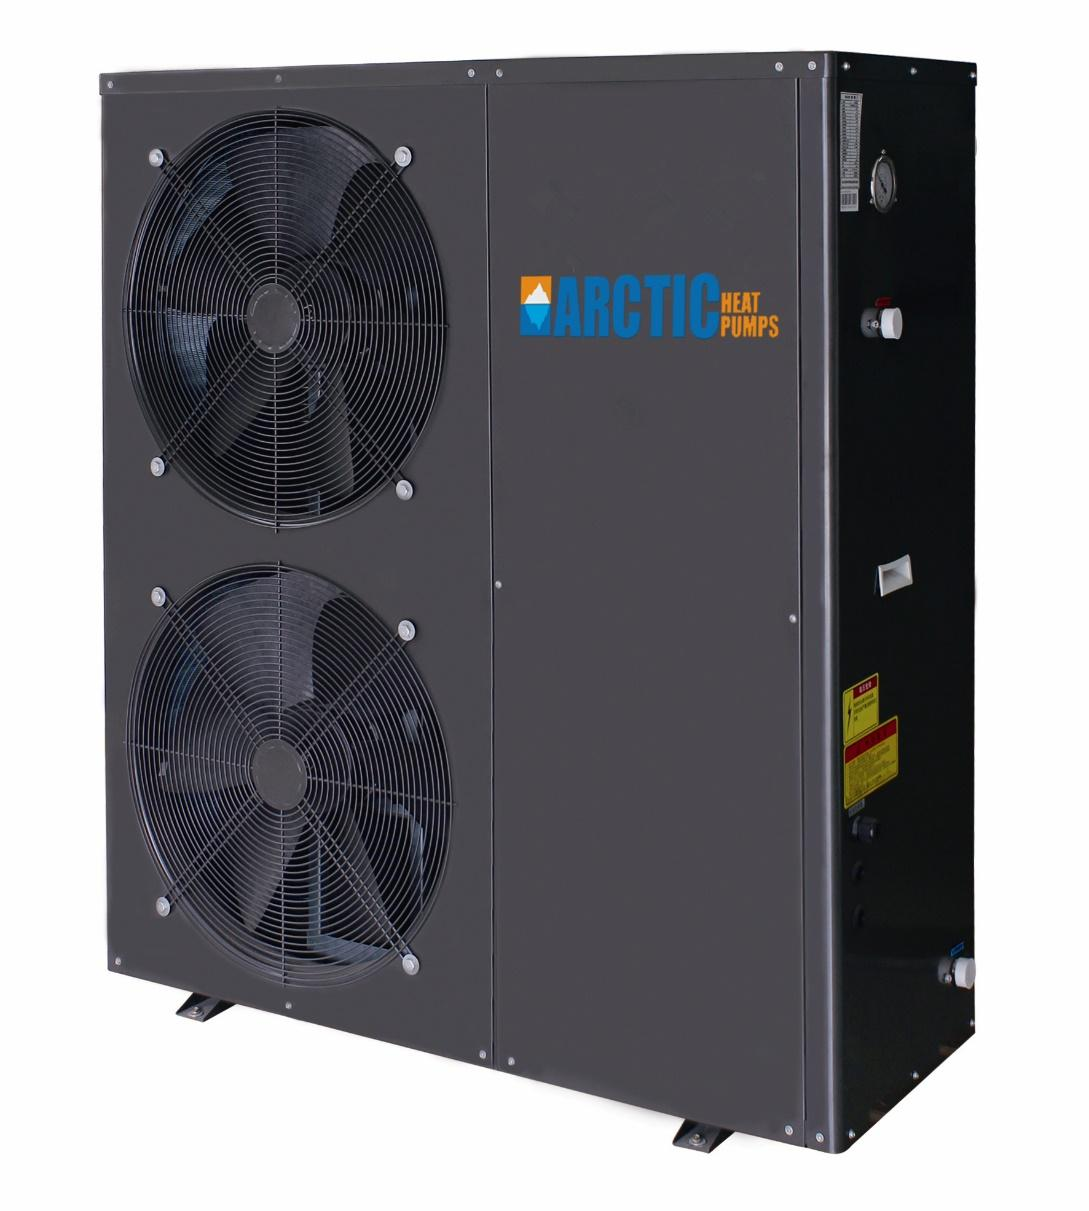 Arctic Hydronic Air to Water Heat Pump - 60,000 BTU with Cold Climate Inverter Technology